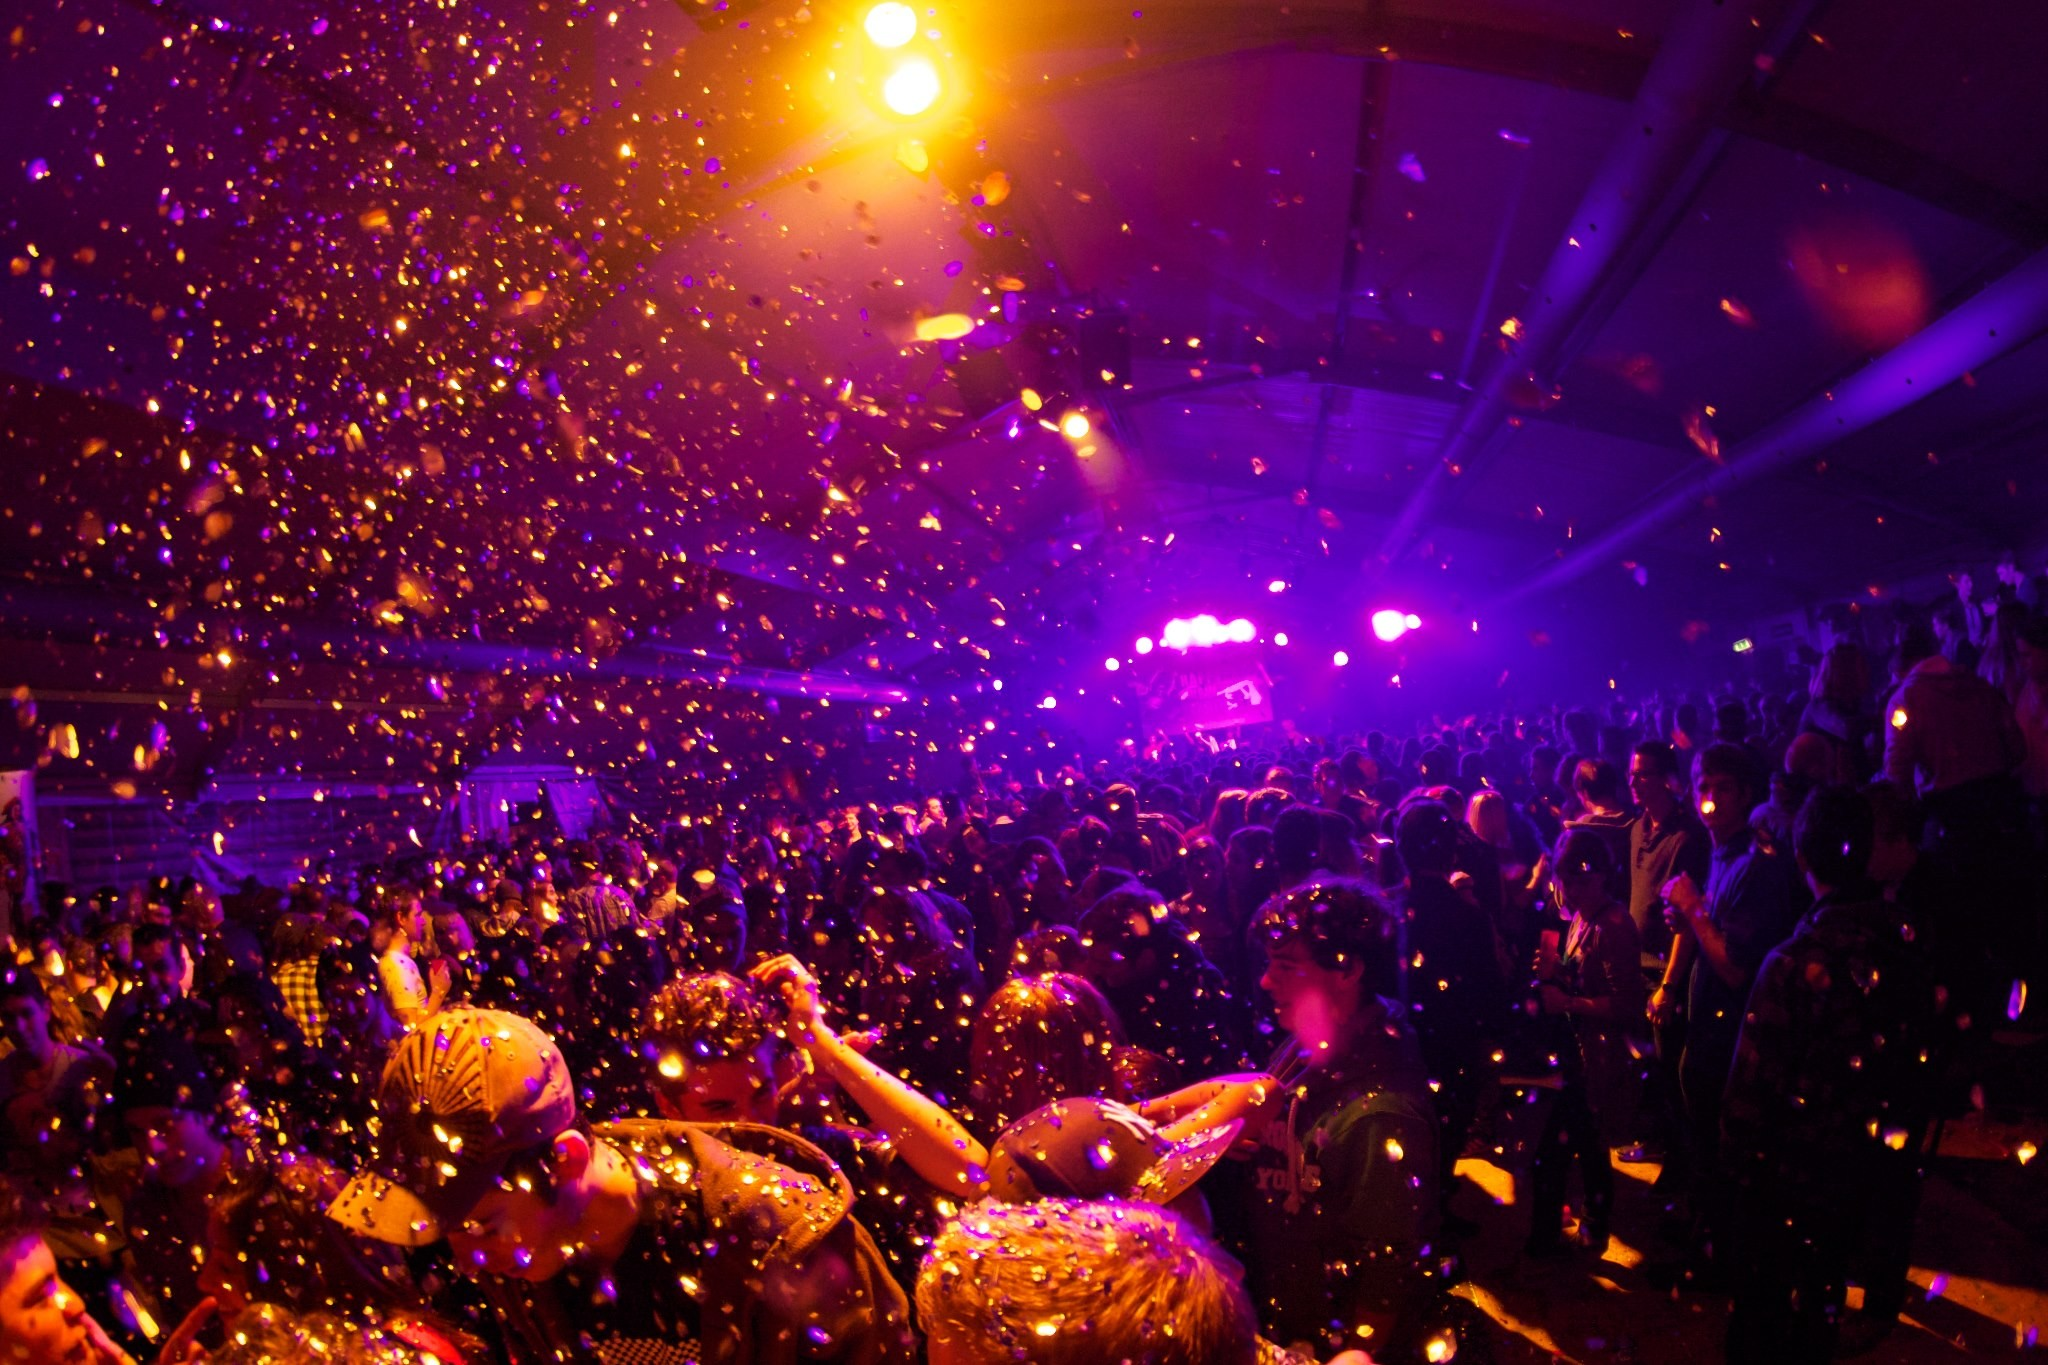 2016 new year party images